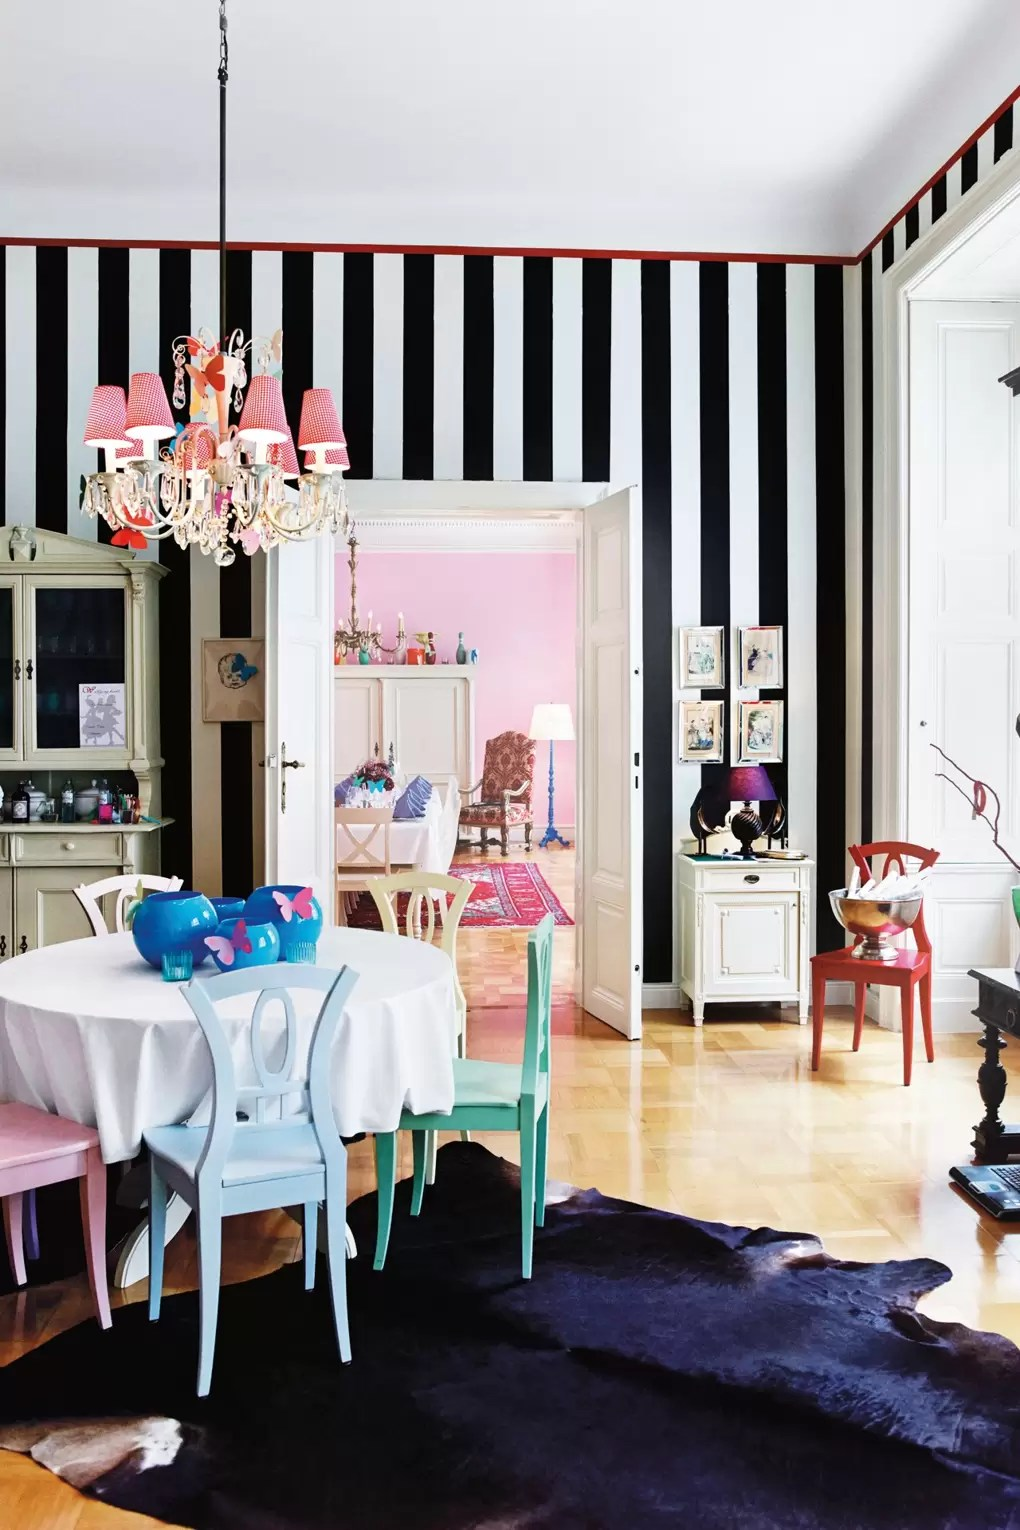 Container Haus Wien Things To Do In Vienna Where To Shop Eat And Stay In The